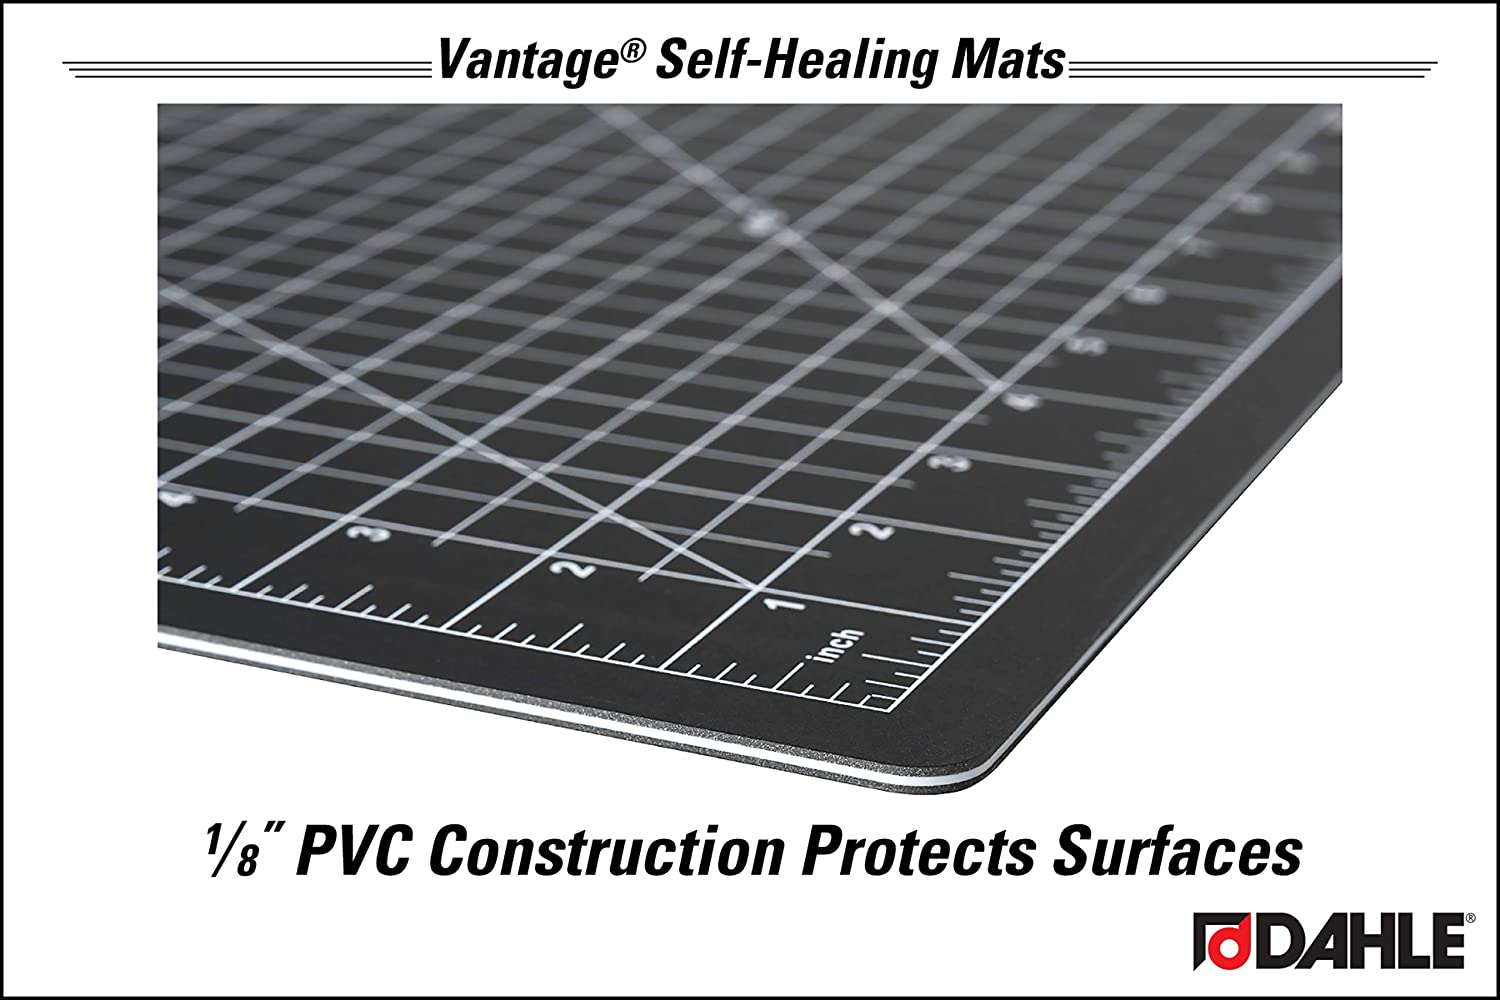 Black and Crafts Dahle 10673 Vantage Self-Healing Cutting Mat Self Healing for Maximum Durability 5 layer PVC Construction Perfect for Cropping Photos 24 x 36 1//2 Grid Lines Cutting Sewing